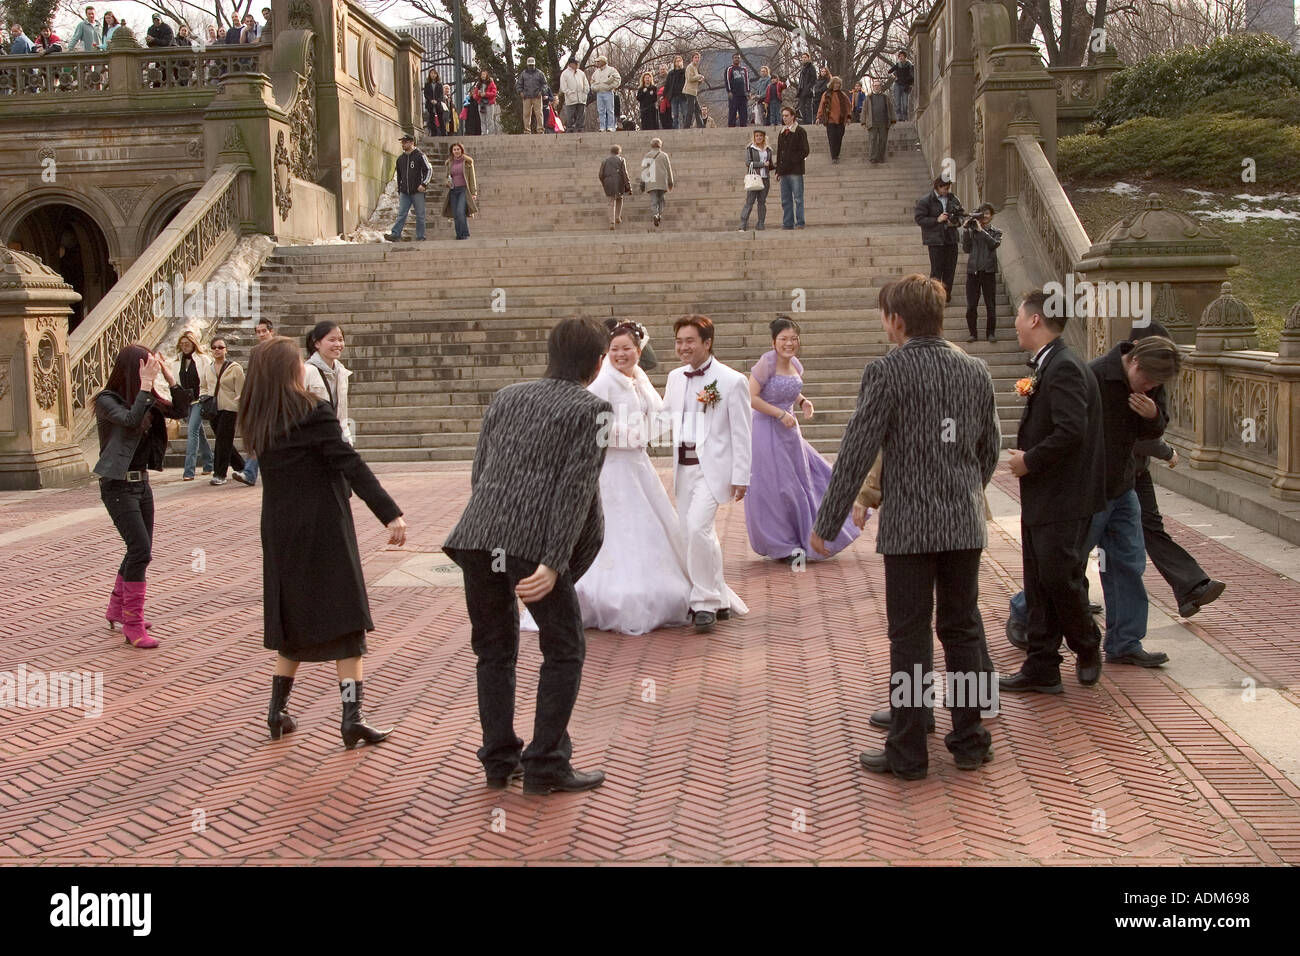 Members Of A Korean Wedding Party Dancing Near The Bethesda Fountain In Central Park Is Used As Backdrop For Ma